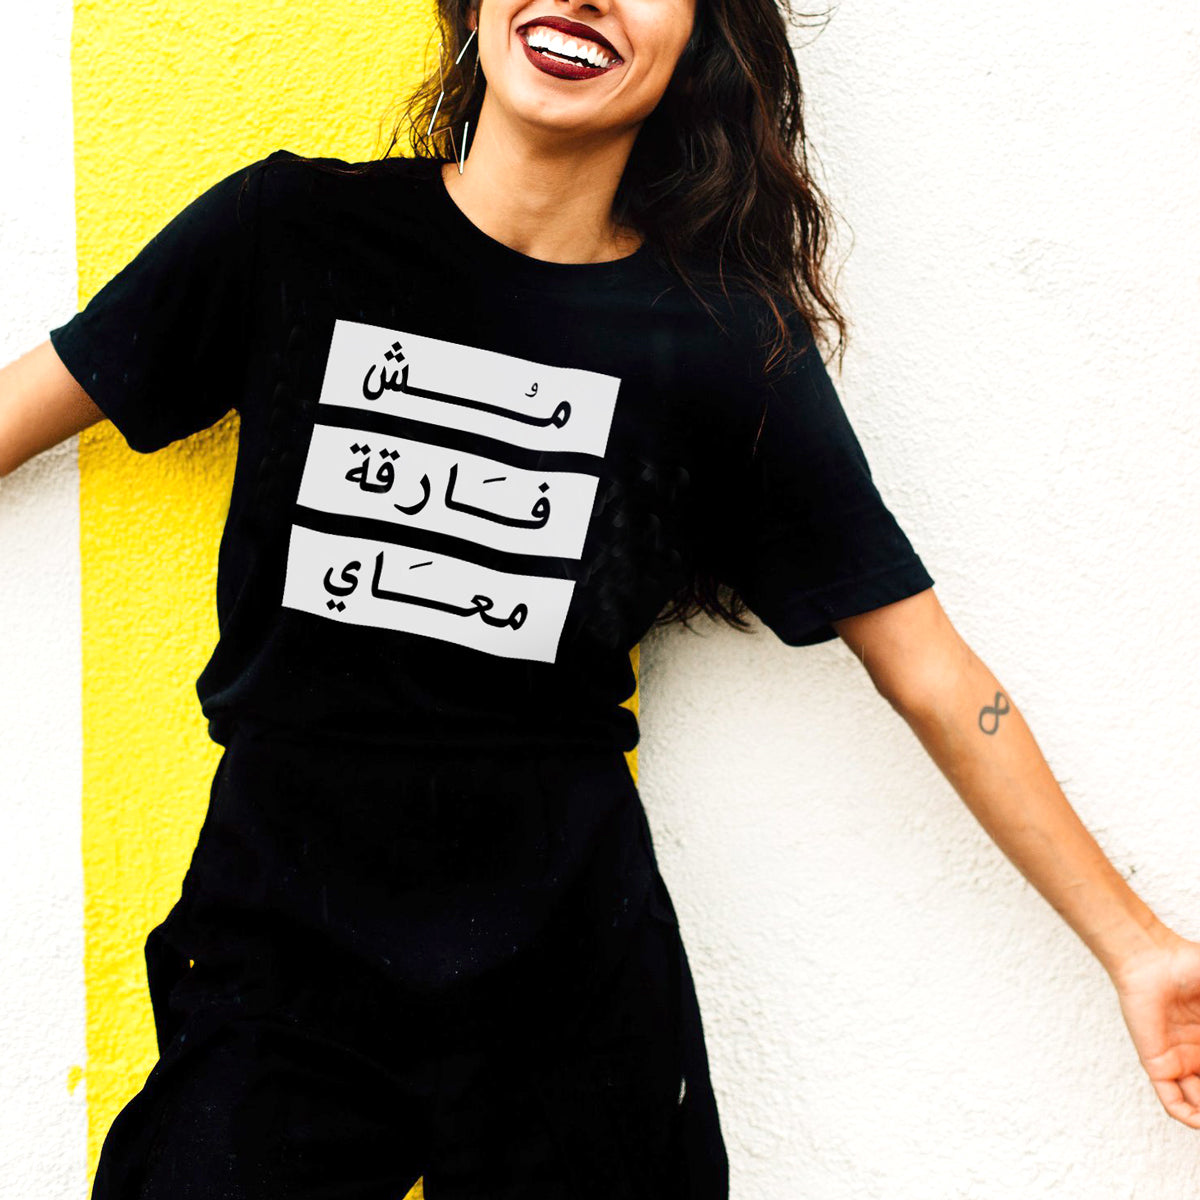 Arabic T-Shirts,Women Tees,Slogan Tees,Graphic T-Shirts,Yislamoo